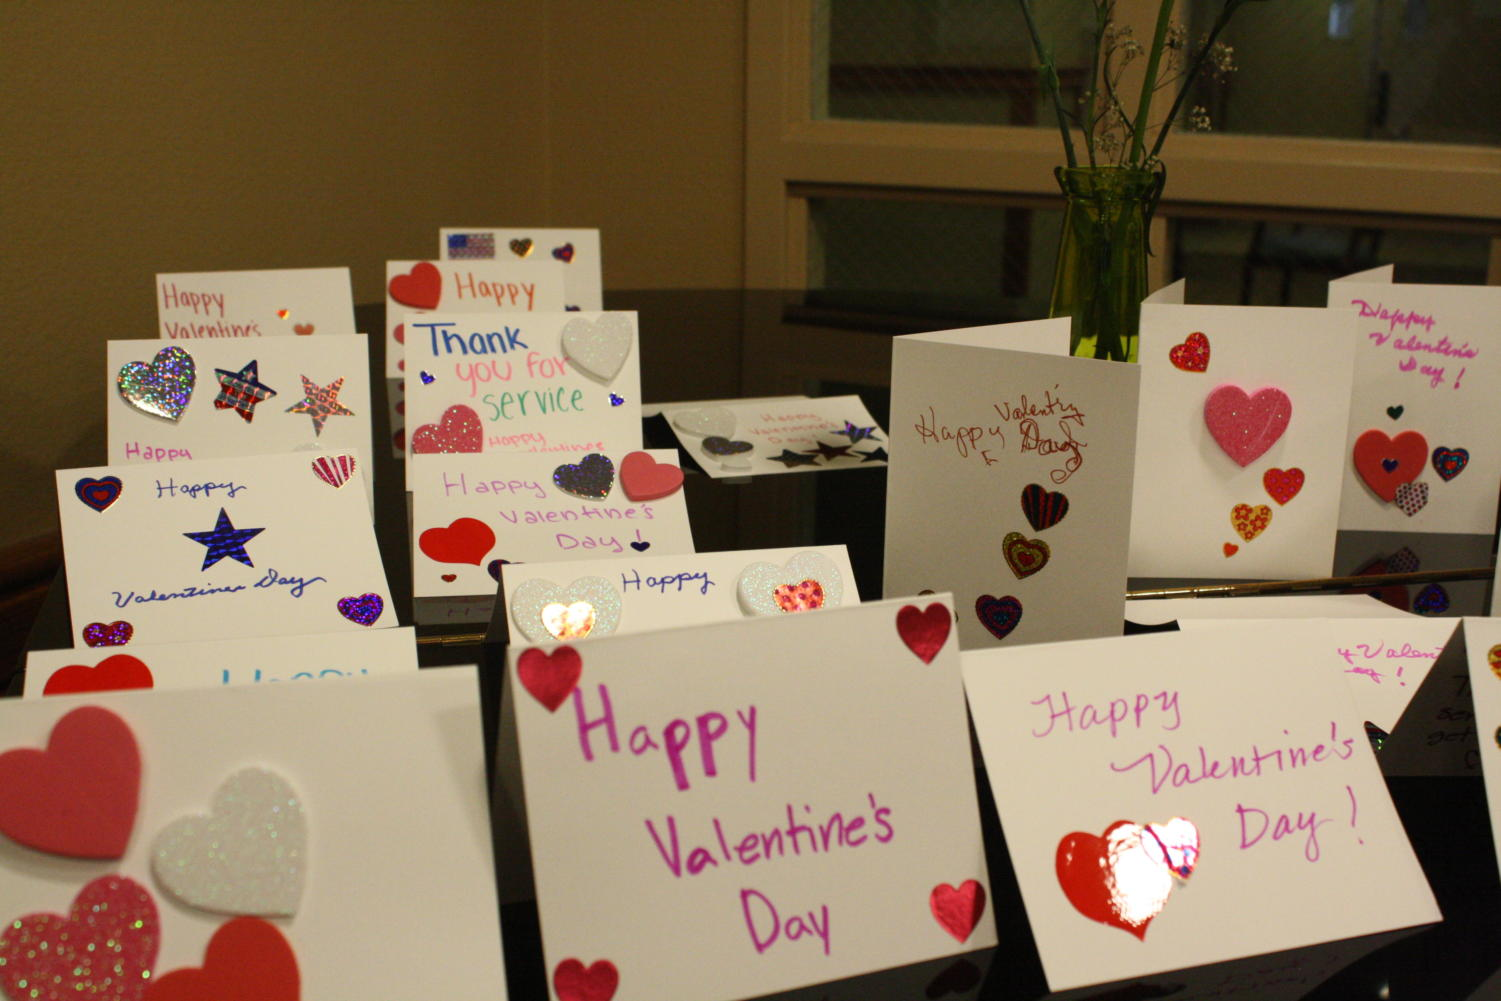 Many+people+made+Valentine%27s+Day+cards+for+the+veterans+to+show+their+love+and+appreciation.